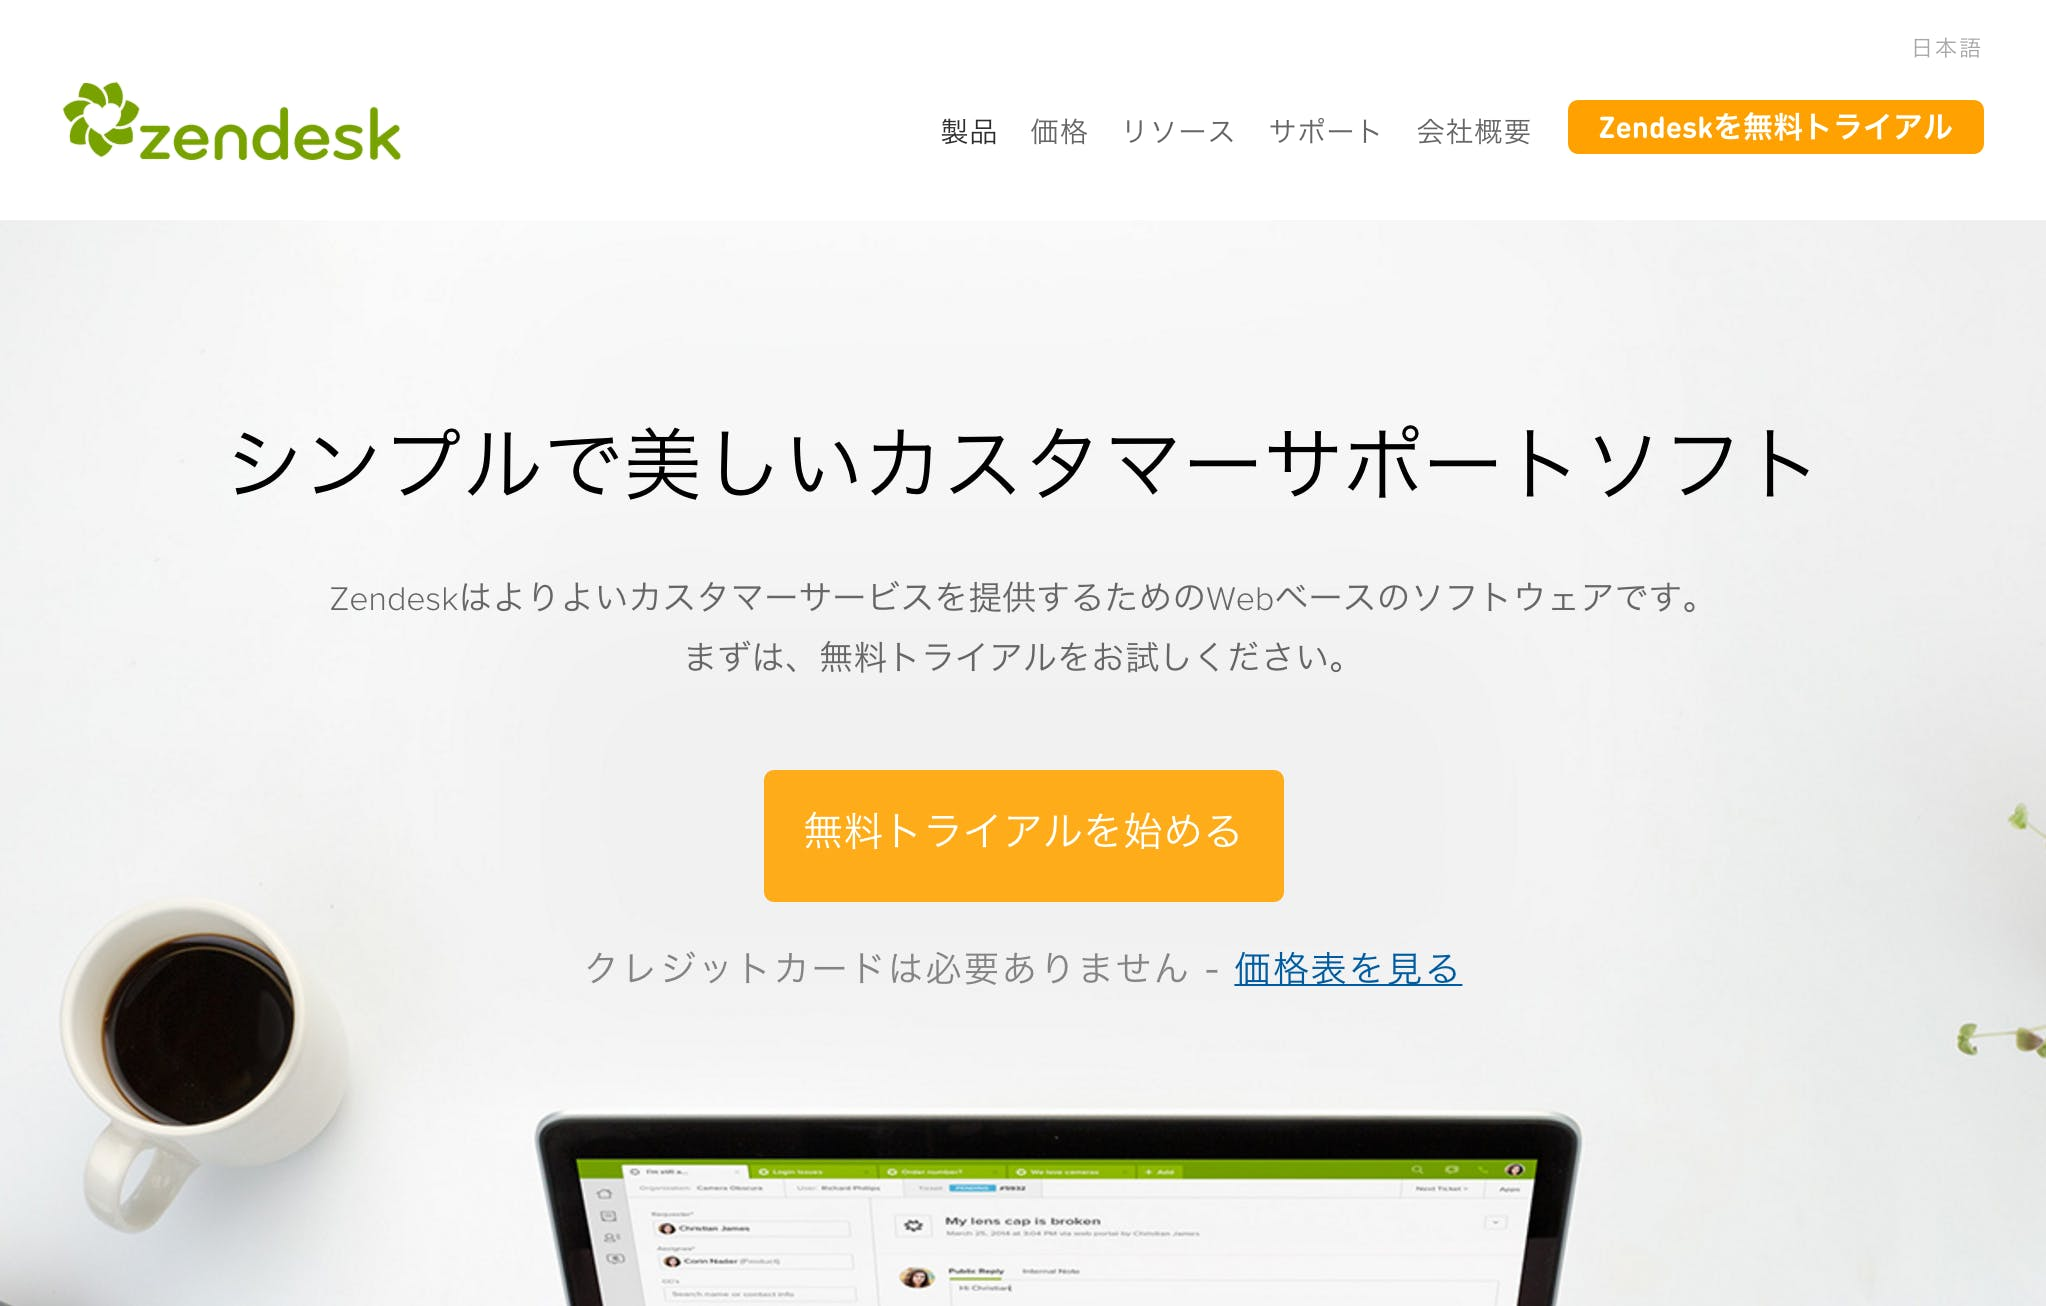 Zendesk Japan   カスタマーサポートソフトウェア   ヘルプデスクシステム.png